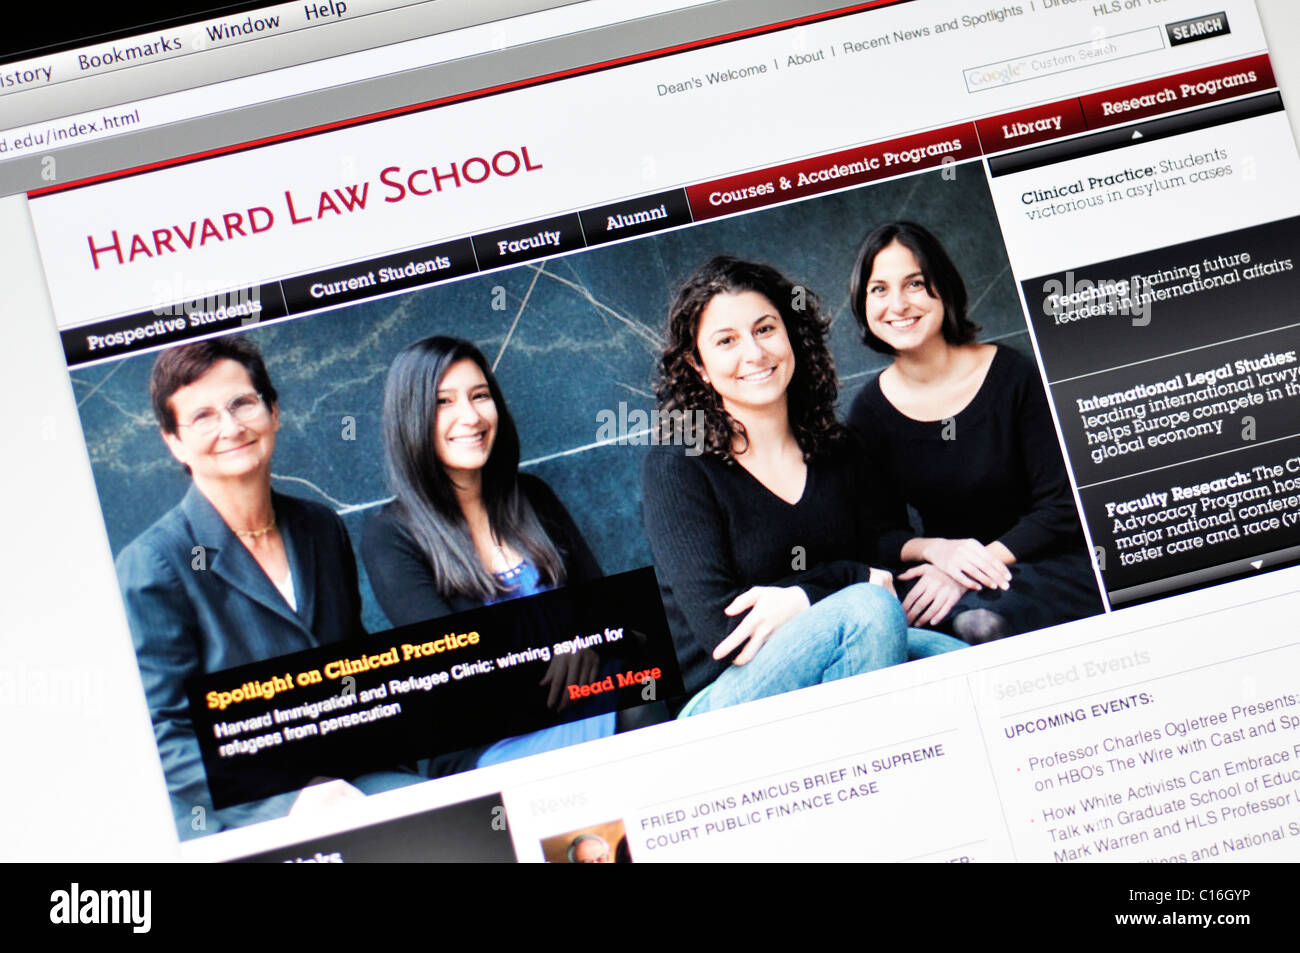 Harvard University website - Law School - Stock Image